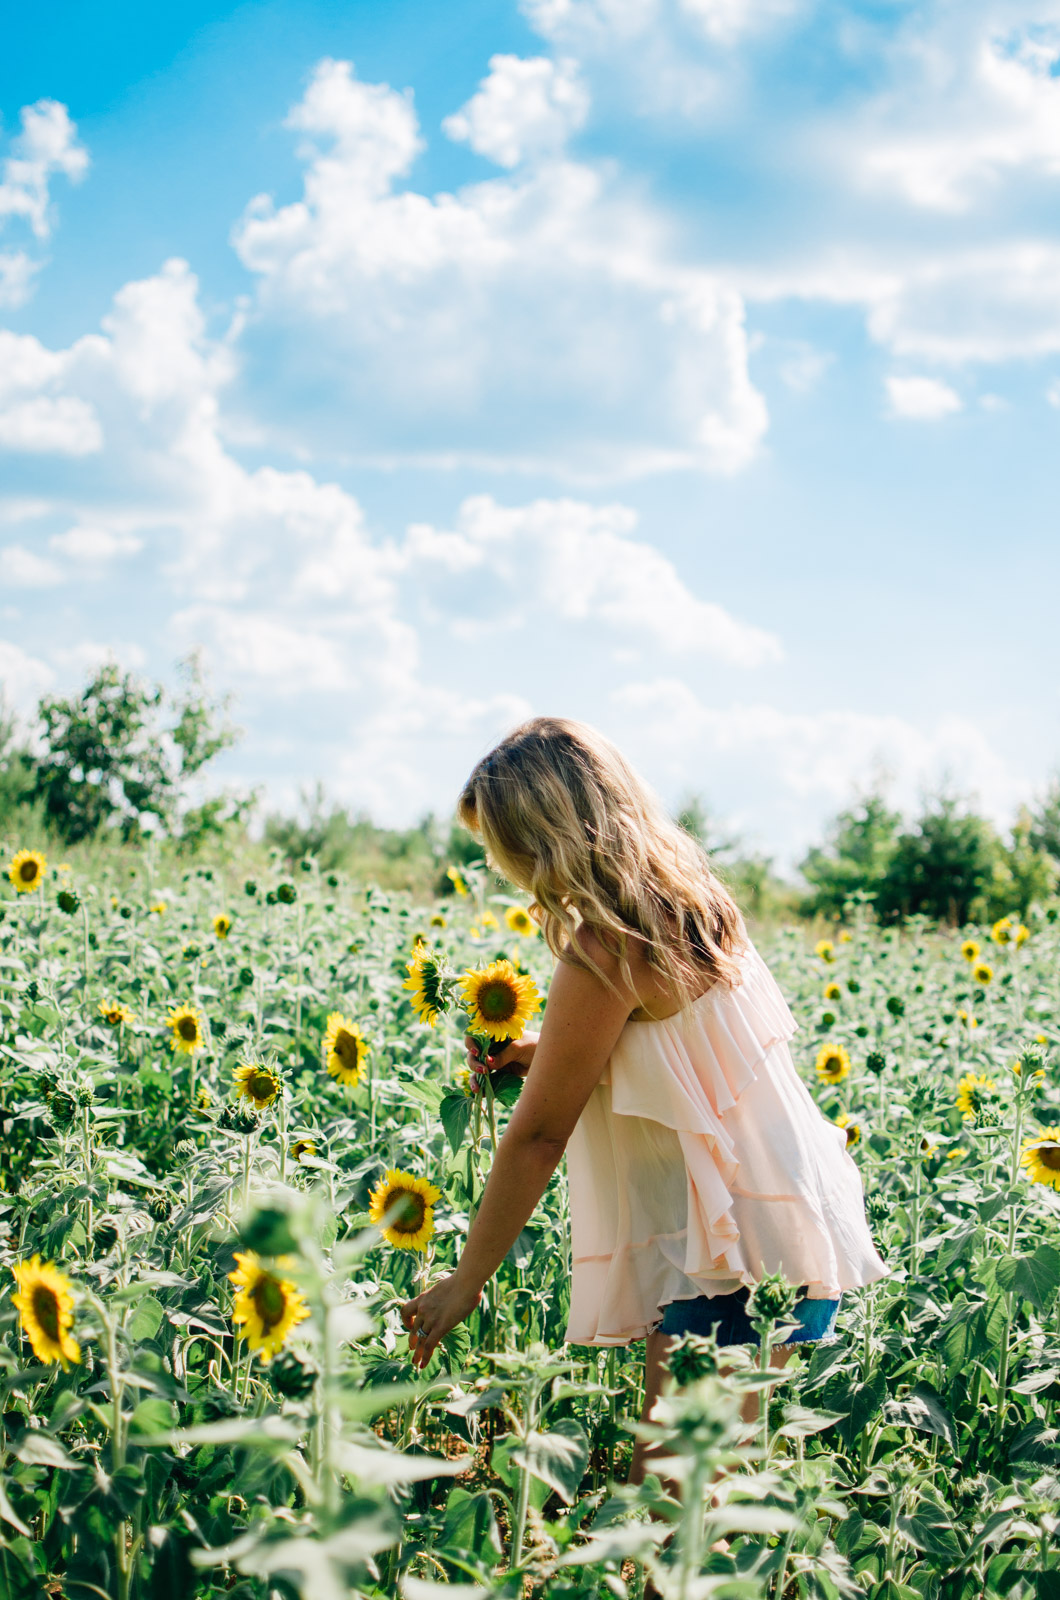 sunflower picking richmond virginia - richmond virginia fashion blogger | For more cute summer outfits, head to bylaurenm.com